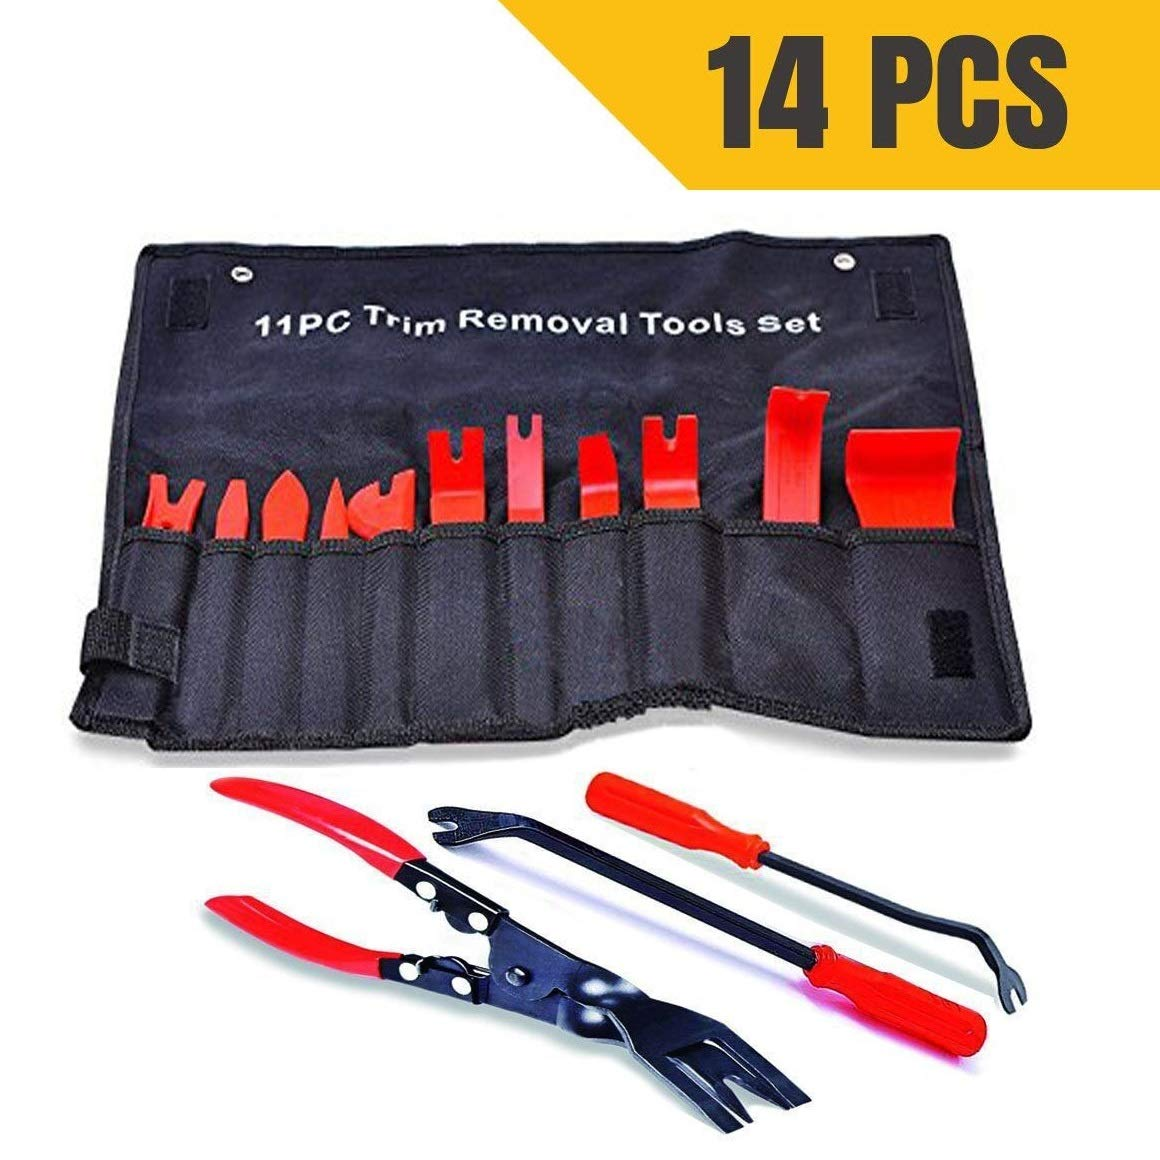 Car Panel Removal Tools Kit 14 Pcs Auto Upholstery Tools,Strong Nylon Door Molding Dash Panel Trim Tool Kit & Clip Pliers for Car Panel Dash Audio Radio Removal Installer and Repair Pry Tool Kits